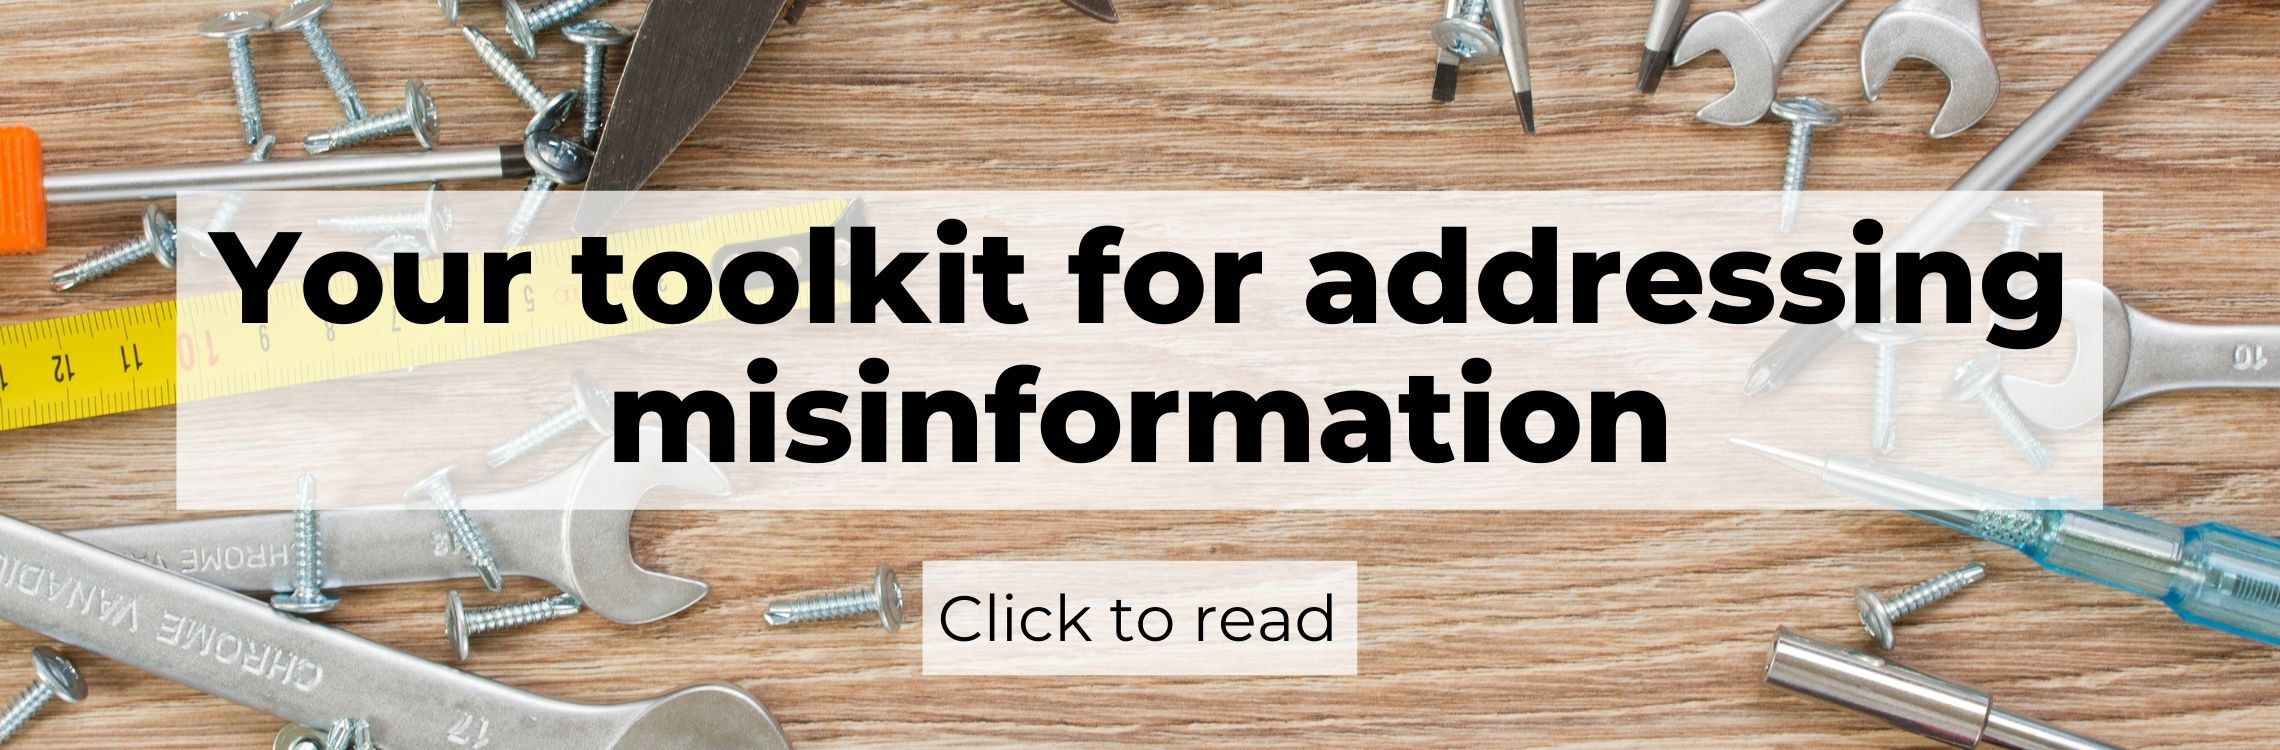 "The words ""Your toolkit for addressing misinformation. Click to read."" in large black block letters over a background of tools spread out on a wooden table."